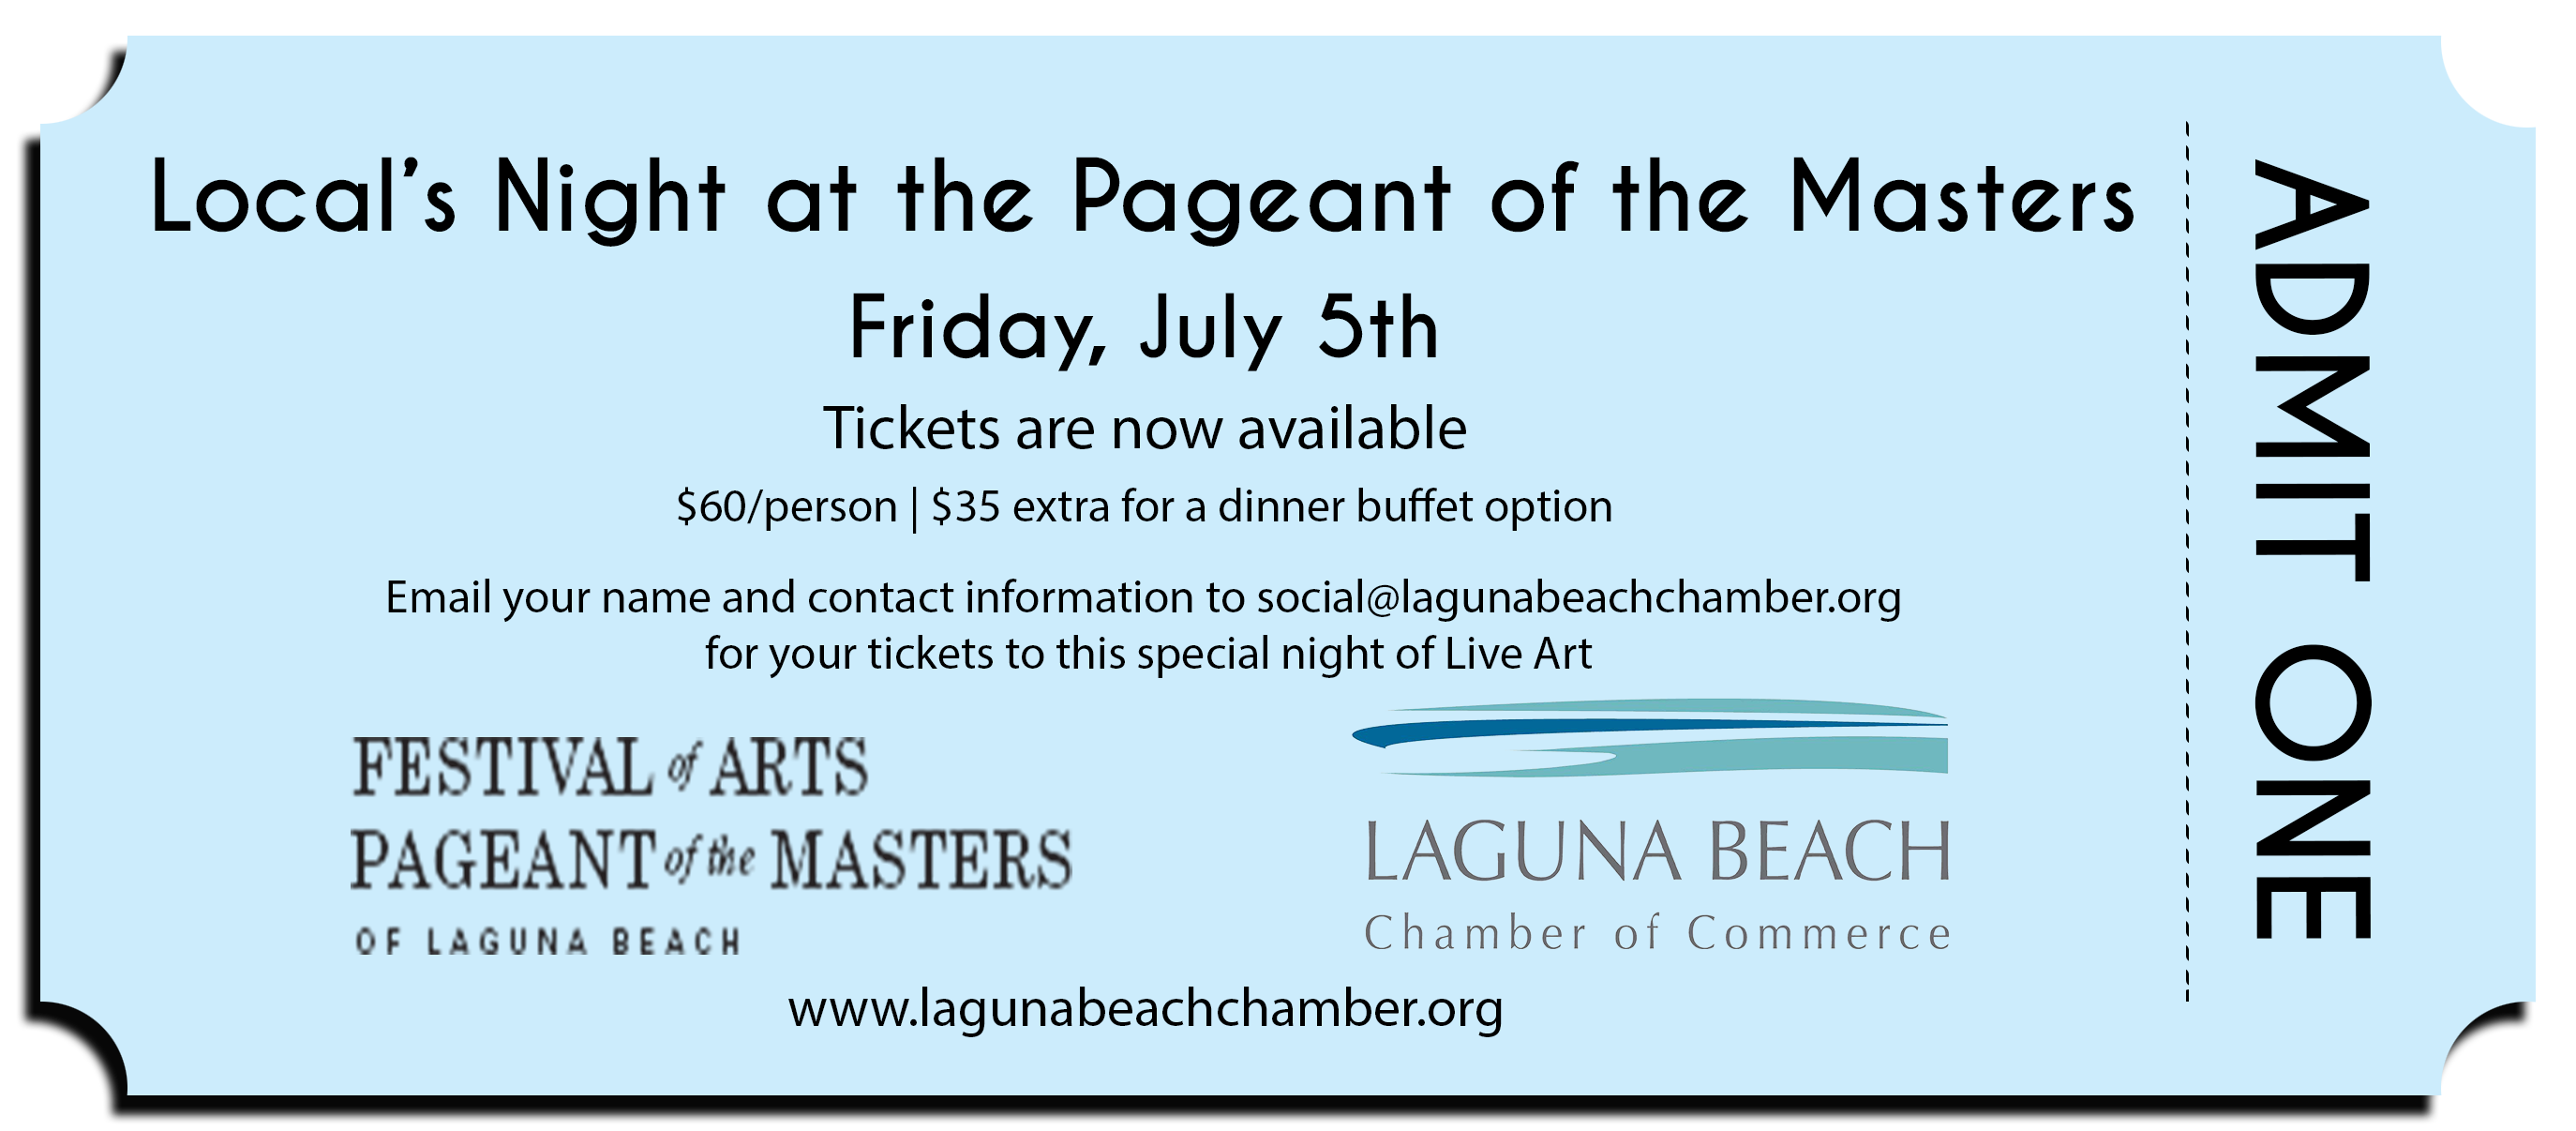 Pageant-of-The-Masters-Ticket-sales-website-w637.jpg